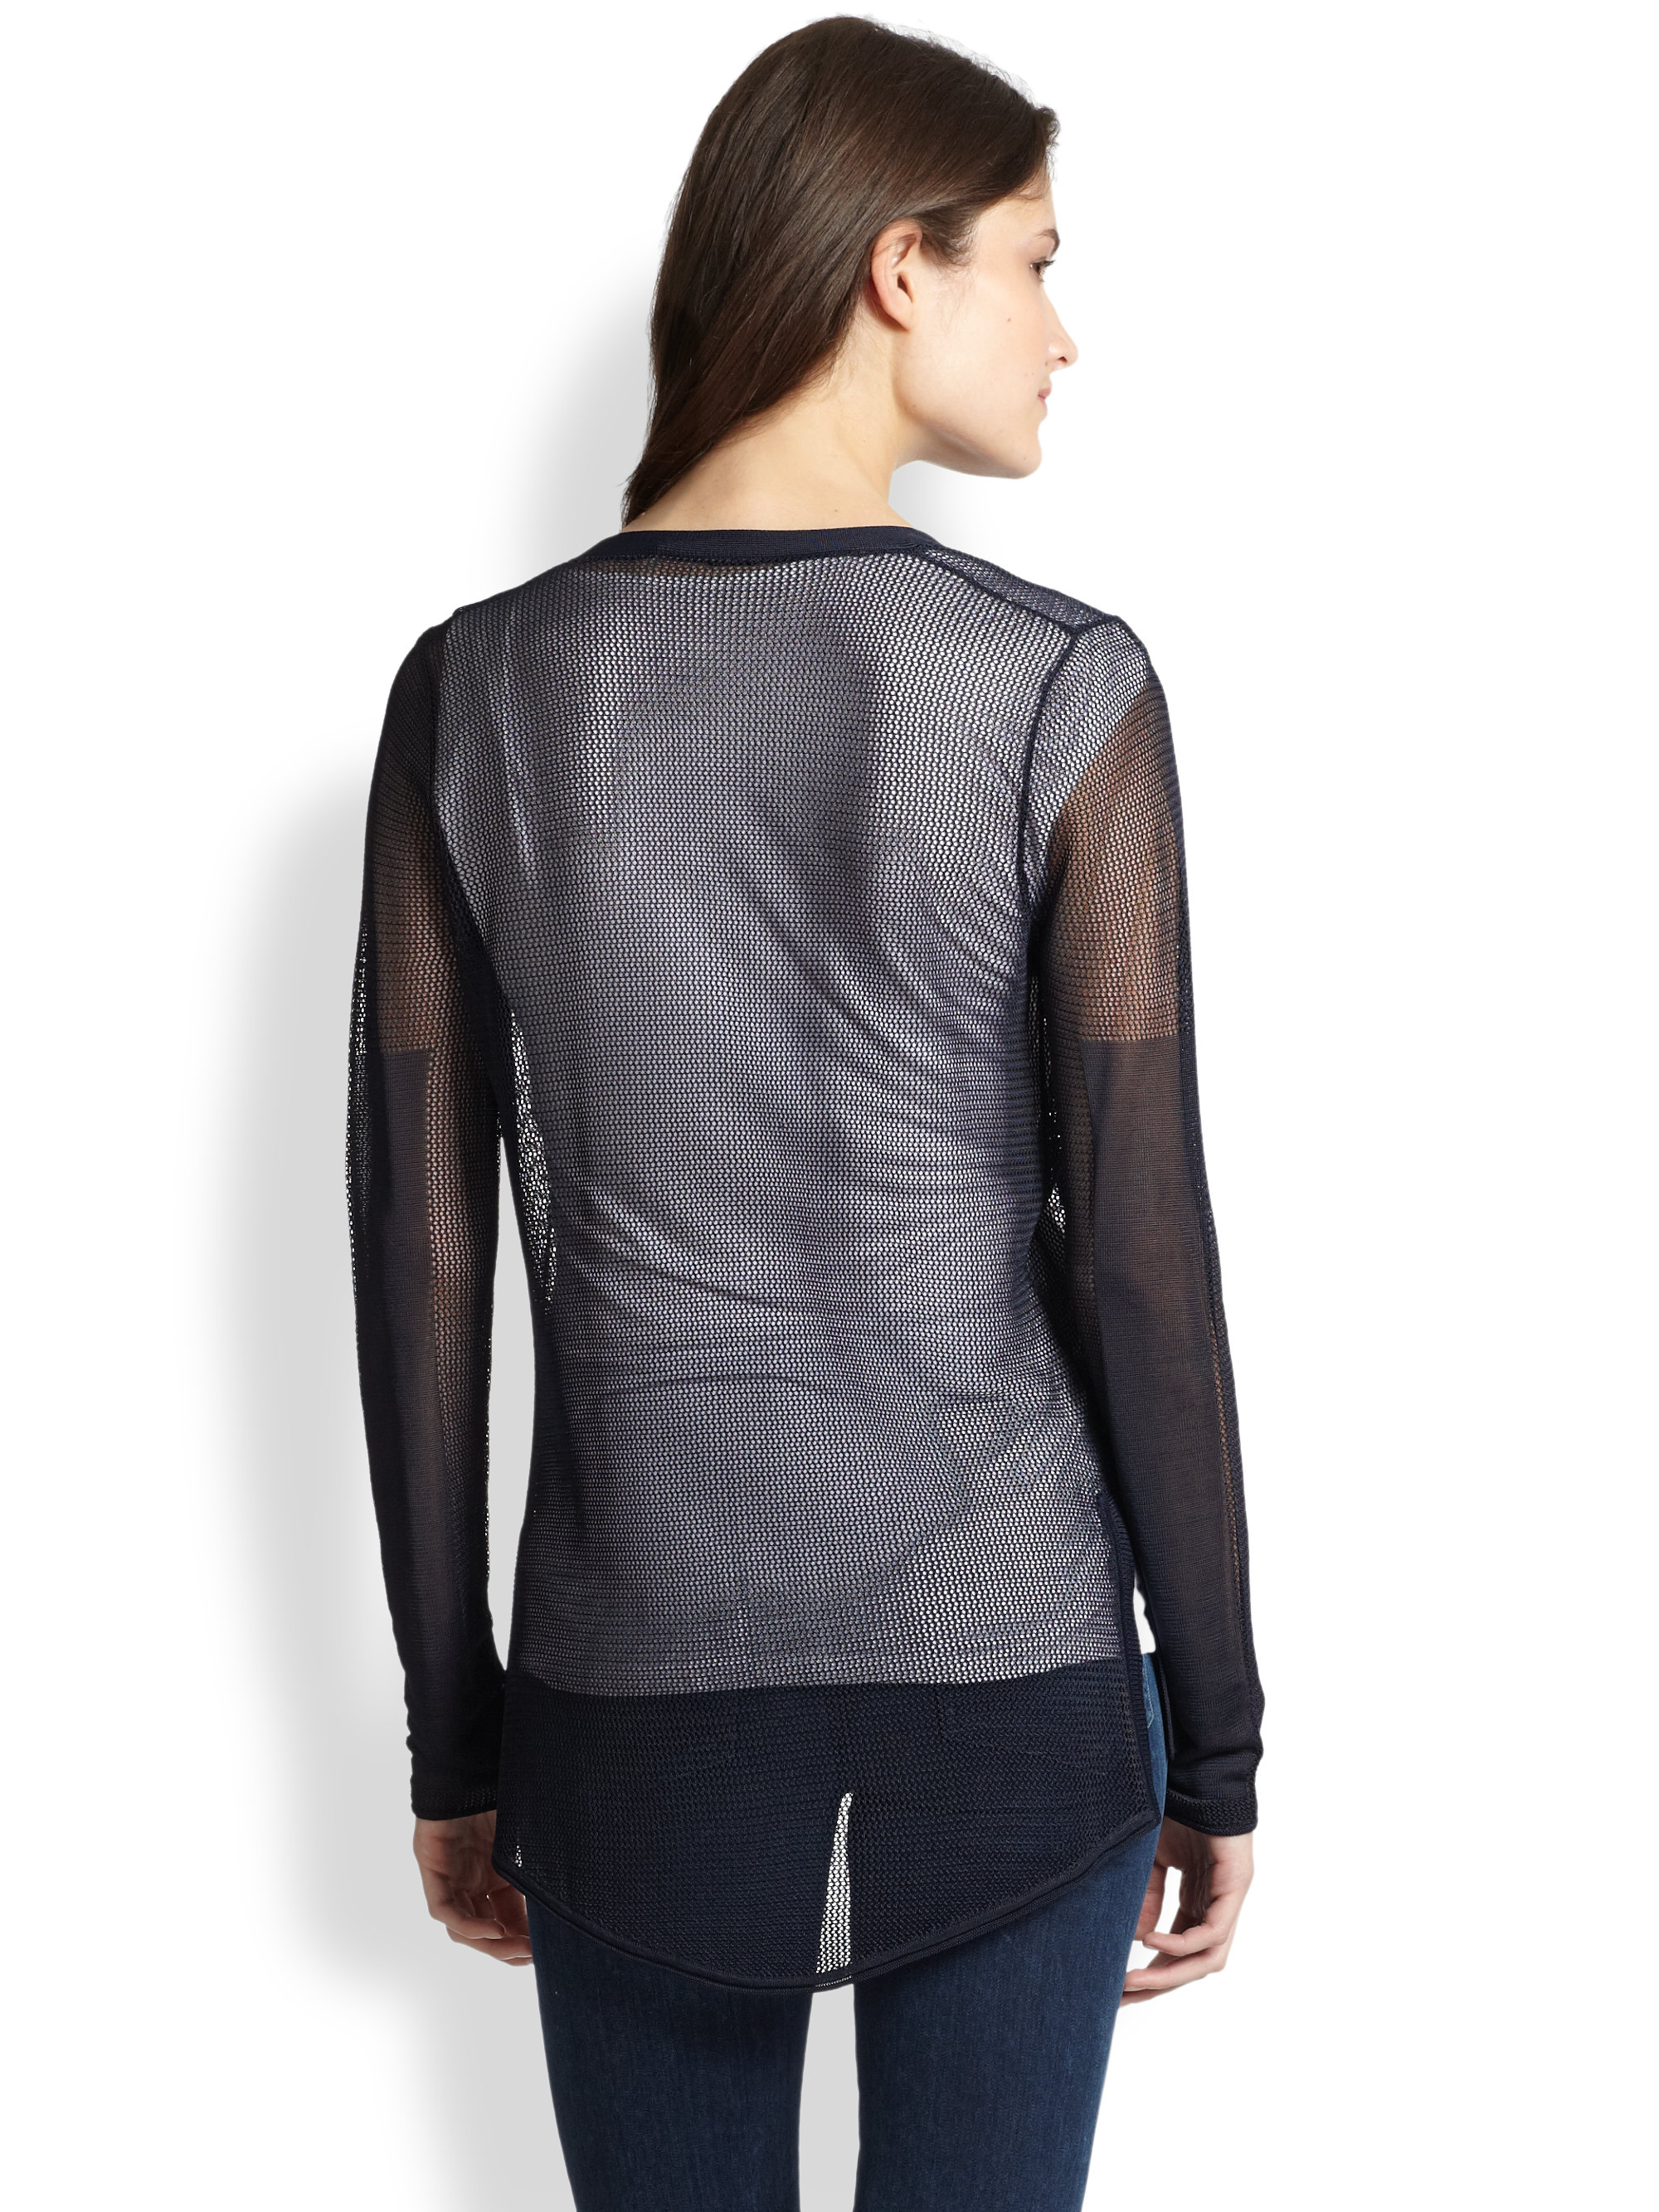 Elie tahari Sheer Mesh Cardigan in Black | Lyst